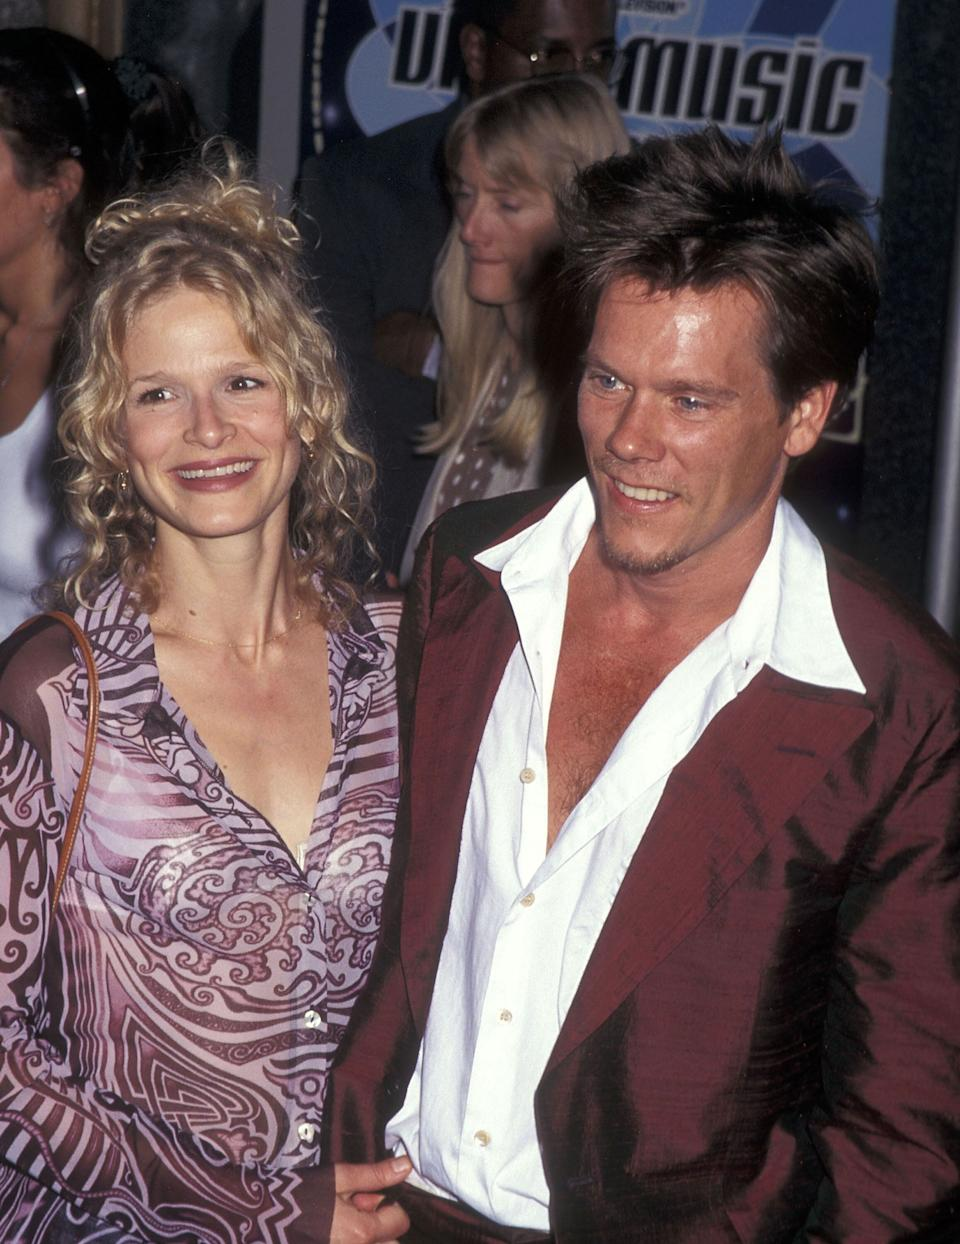 Sedgwick and Bacon at the MTV Video Music Awards at Radio City Music Hall in New York City.